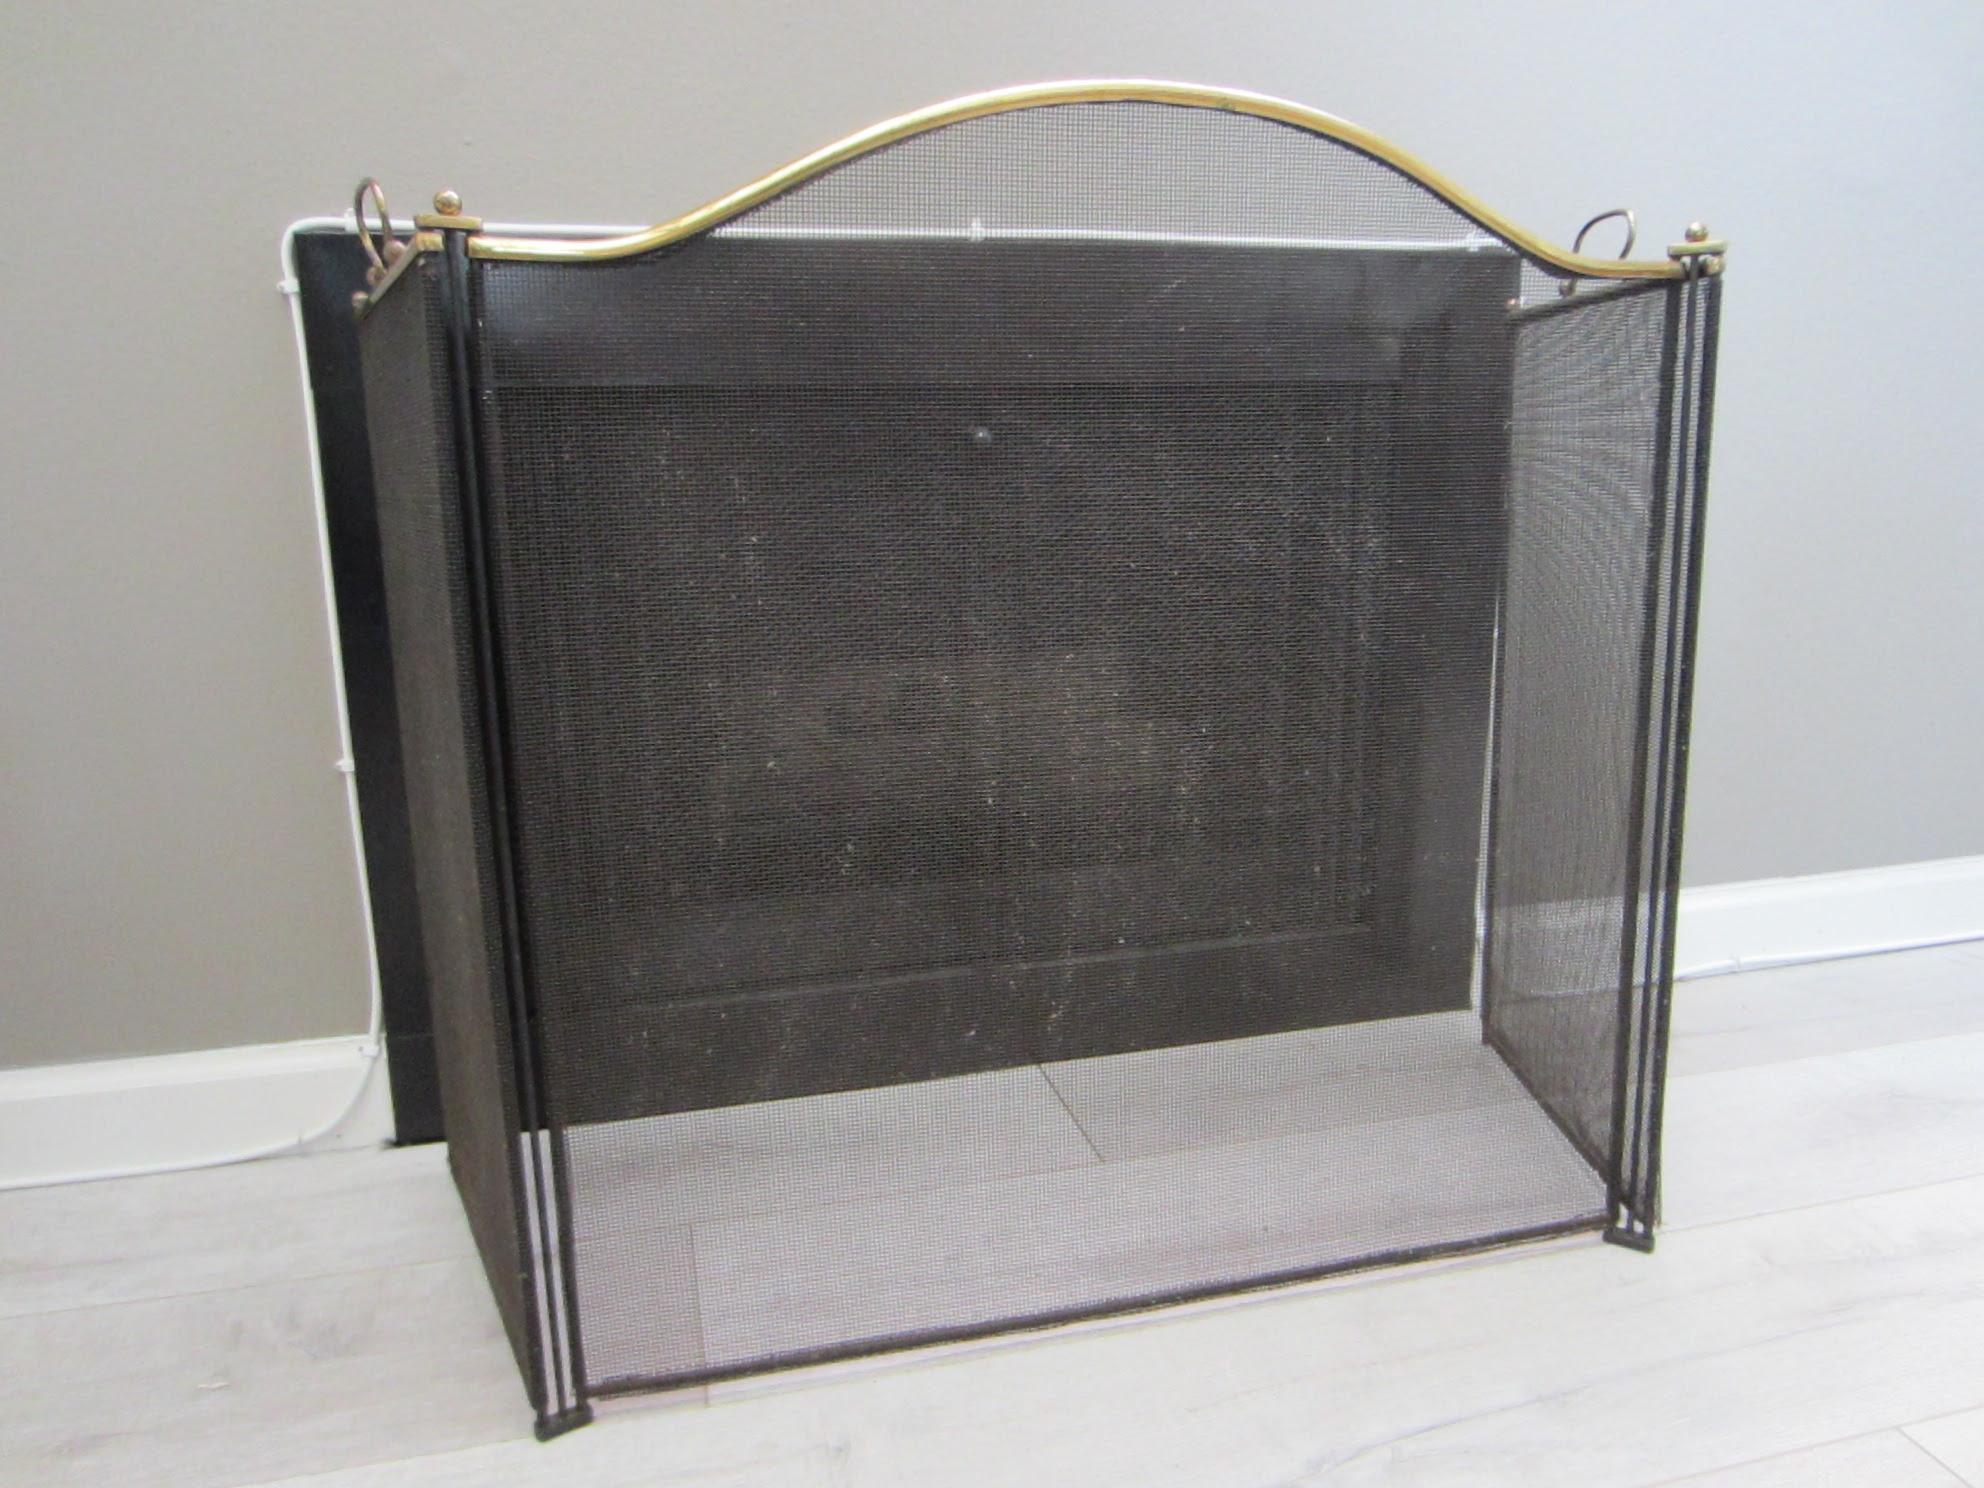 Mesh Fire Place Screen Folding Brass Frame Handles For Sale